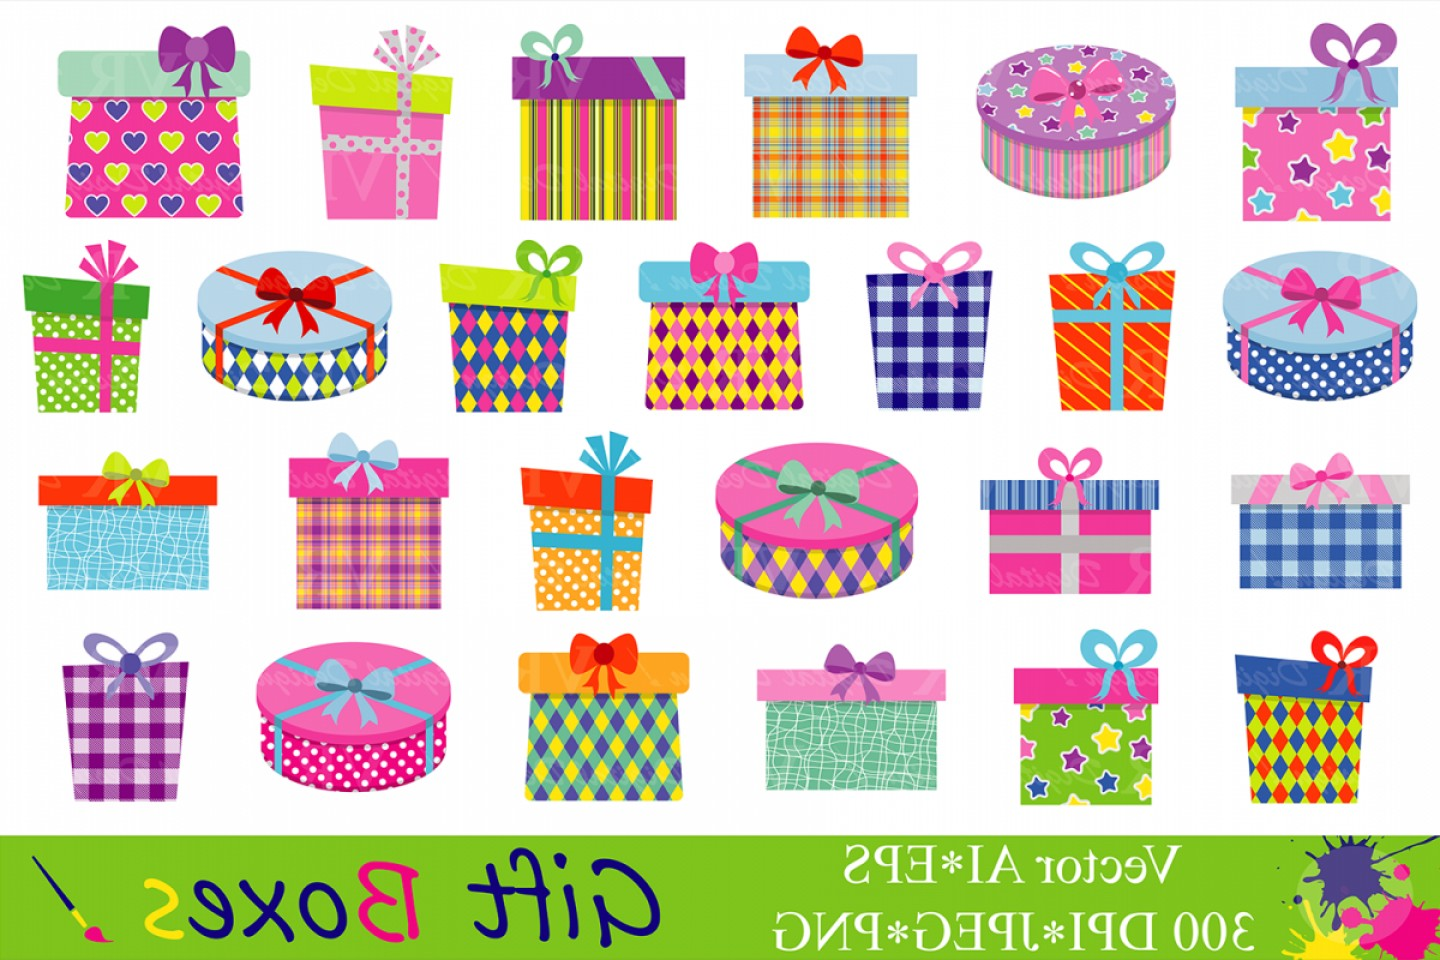 Gift Boxes Clipart Birthday Party Presents Clip Art Gifts.